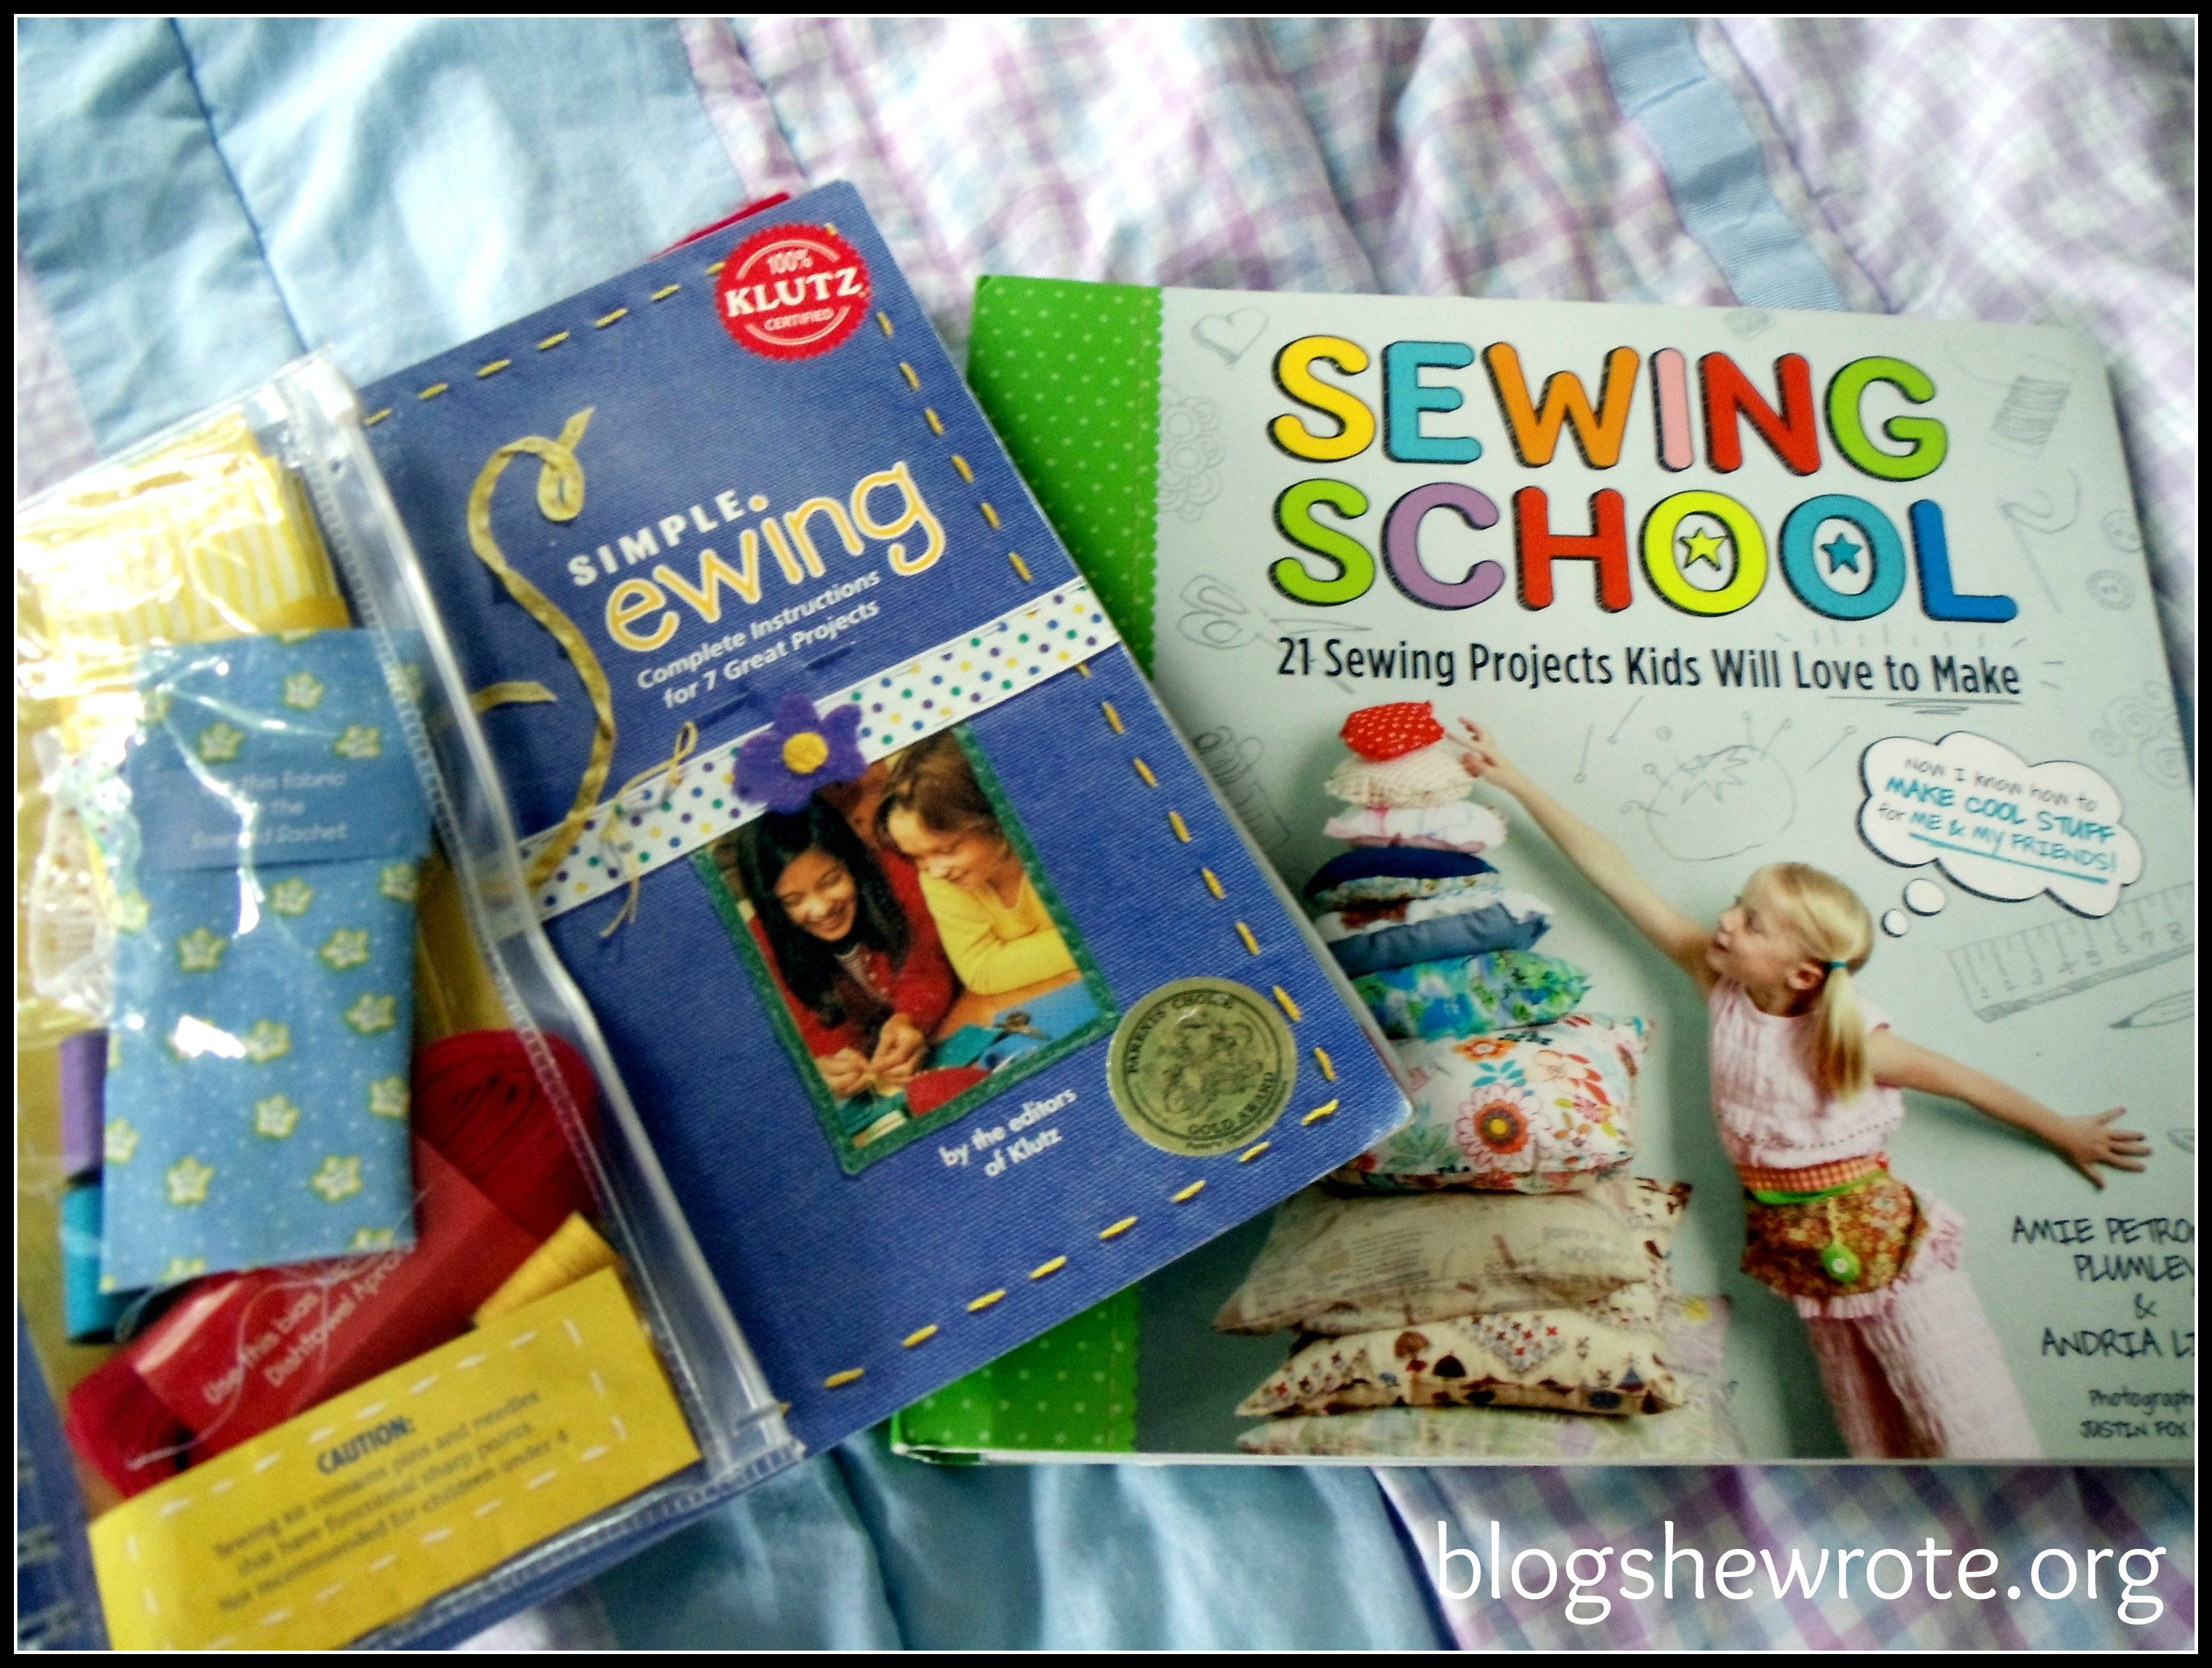 Blog She Wrote: Beginner Sewing Projects & Project Resources